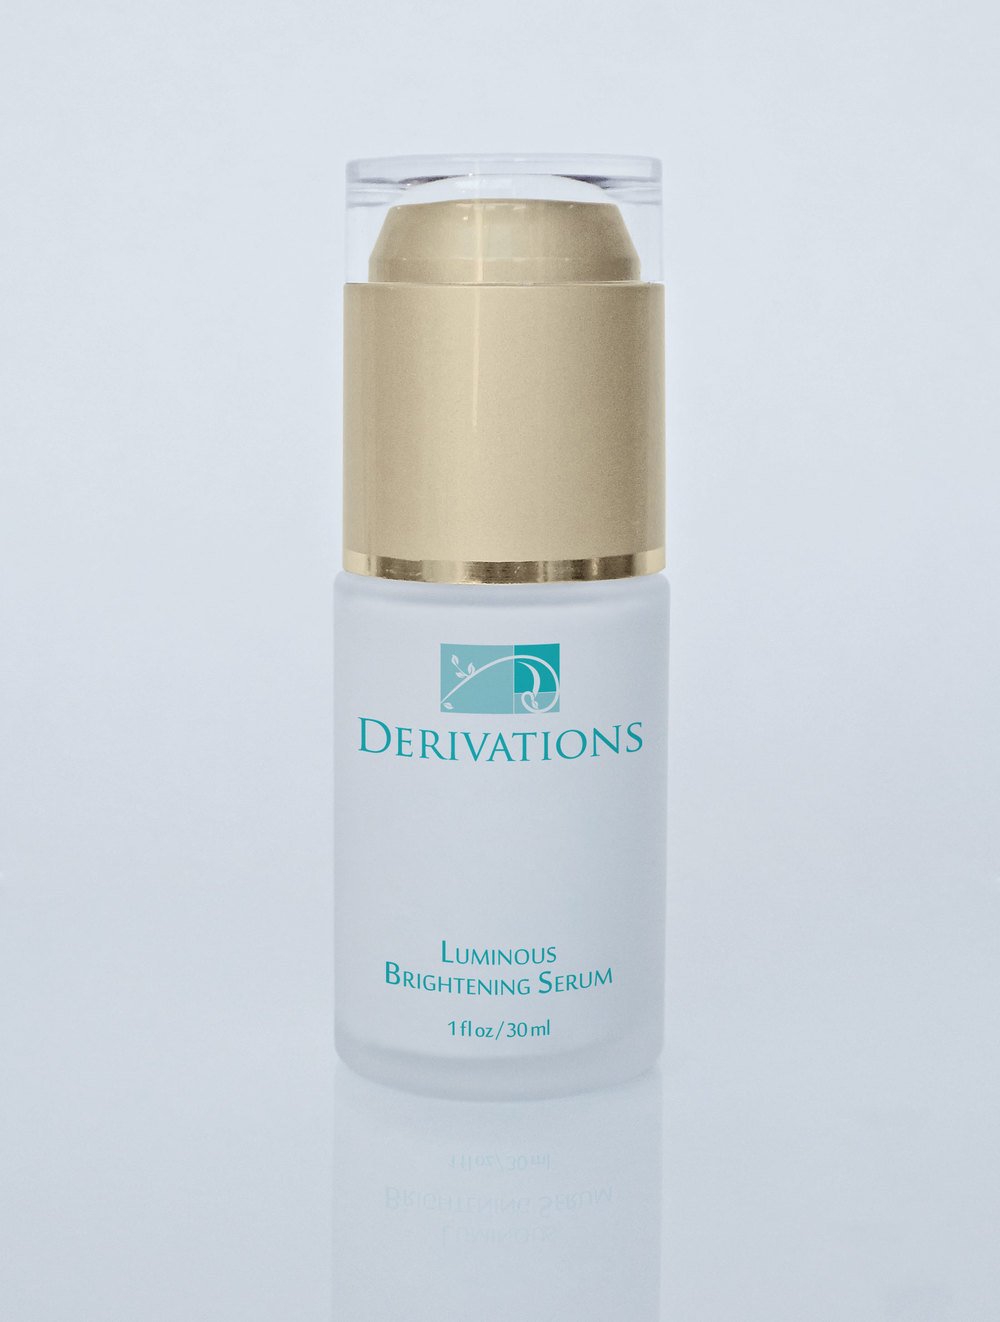 Luminous Brightening Serum